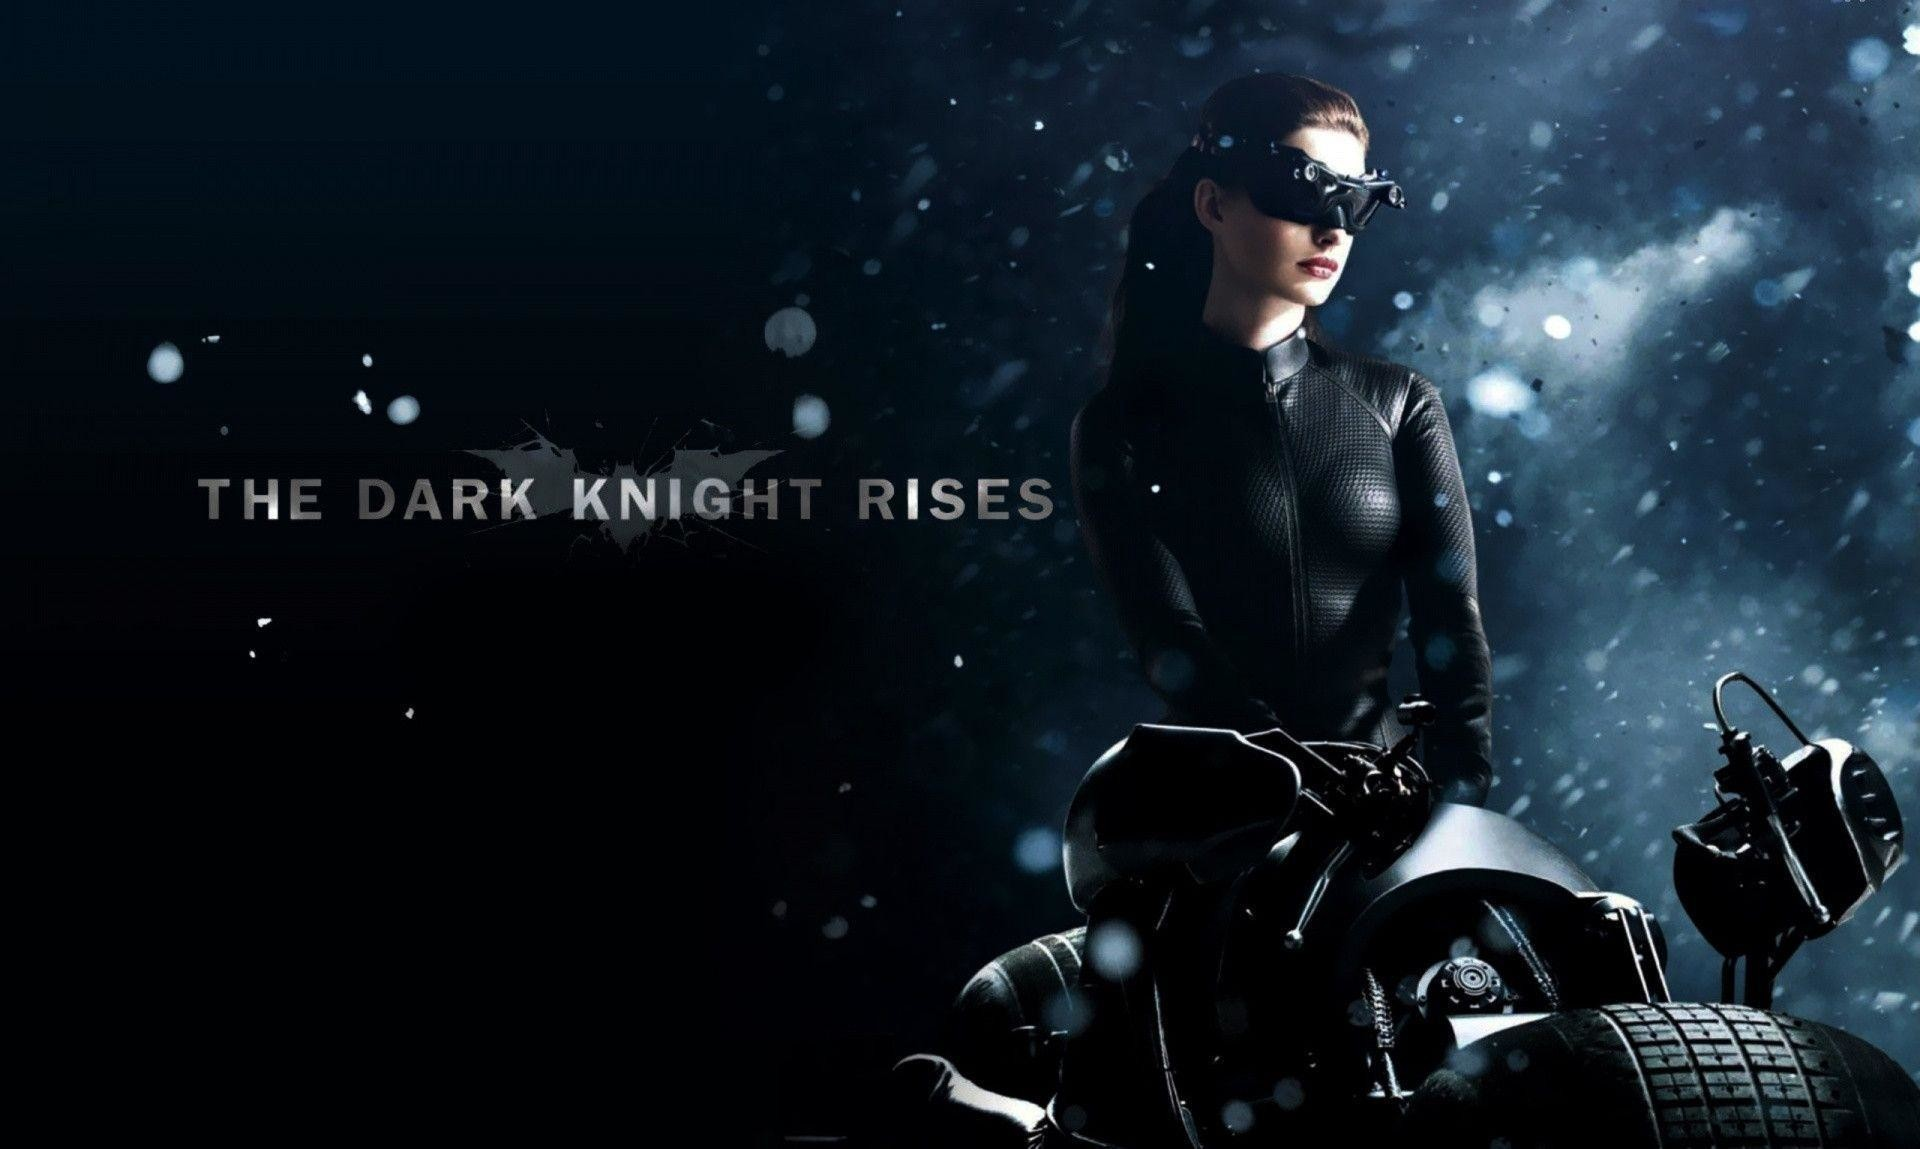 1920x1149 cat woman the dark knight rises hd backgrounds | HD Wallpapers .